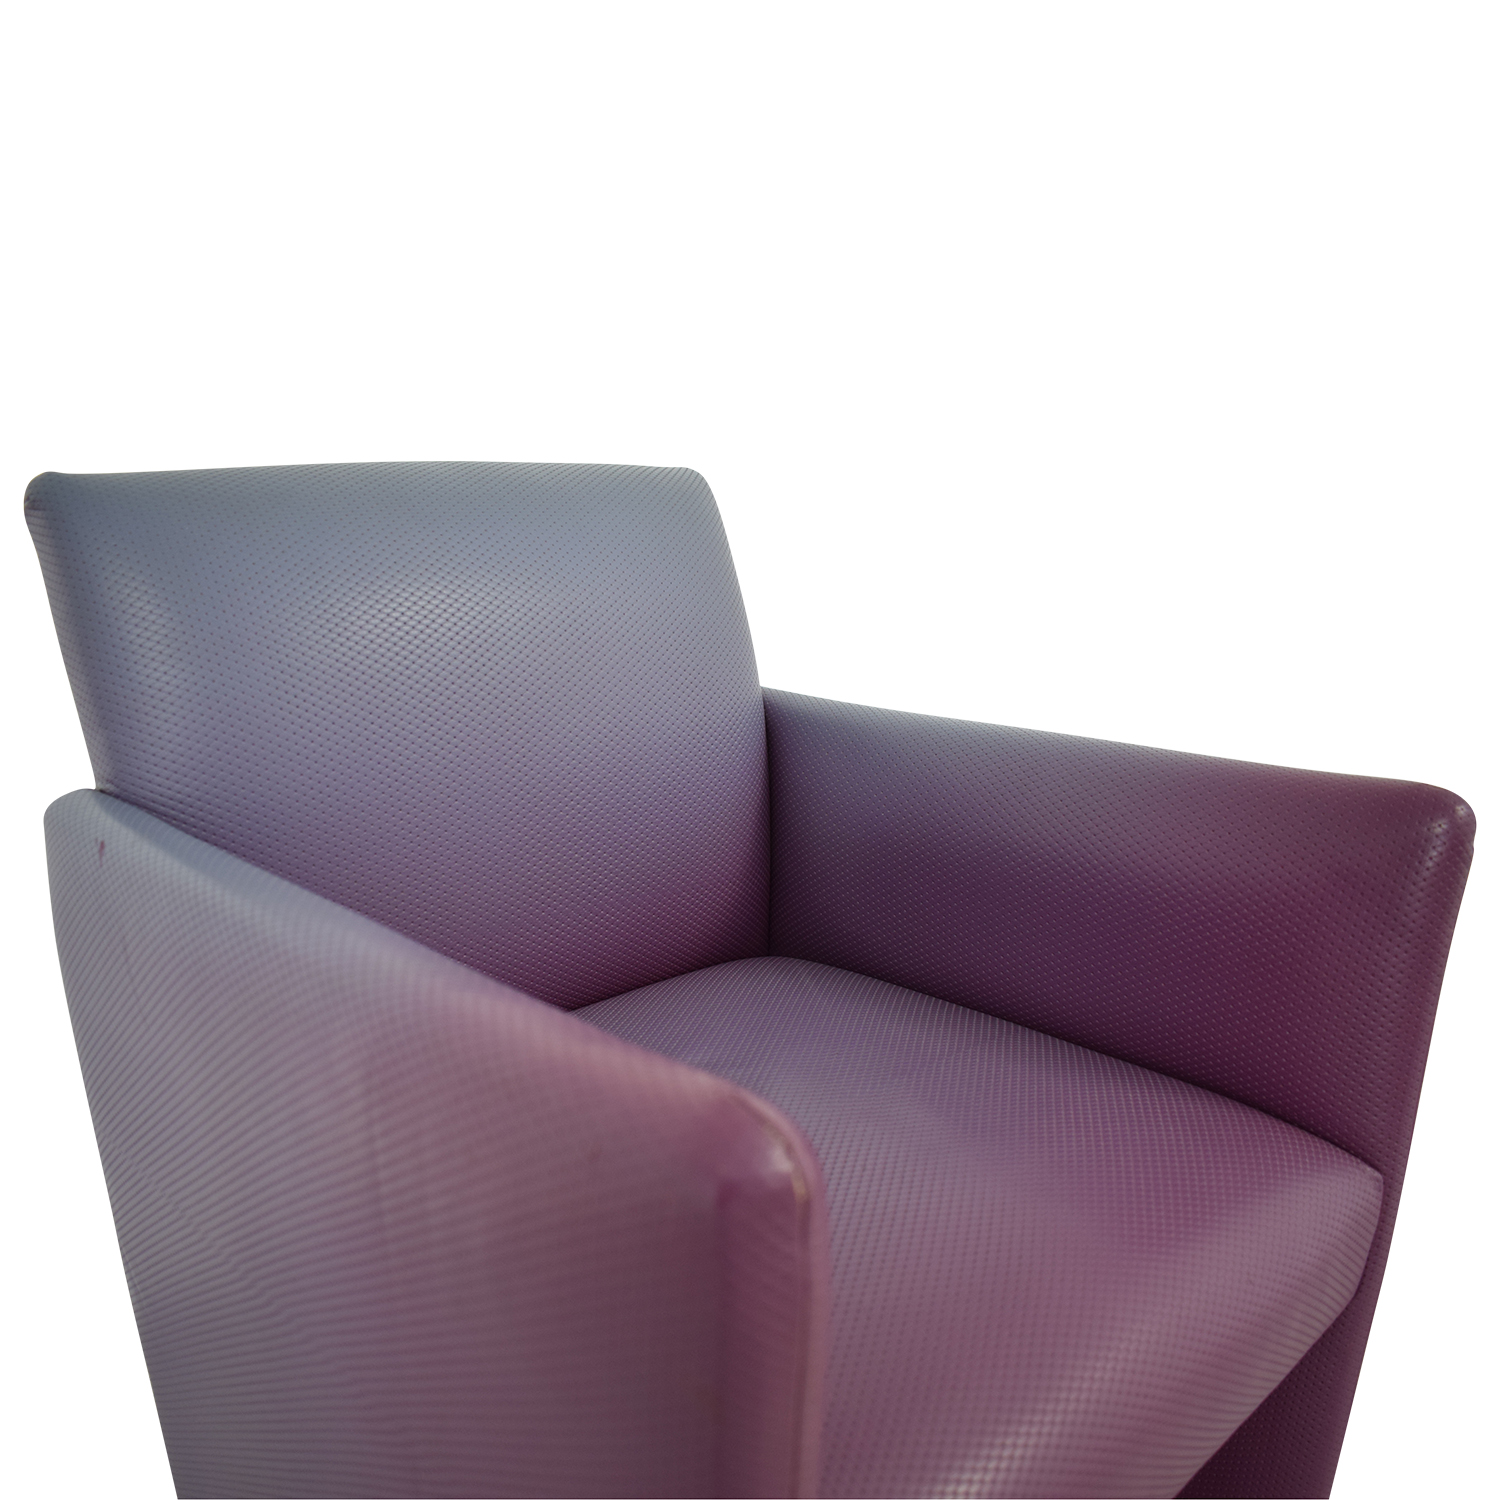 Furniture Masters Furniture Masters Purple Accent Chair second hand